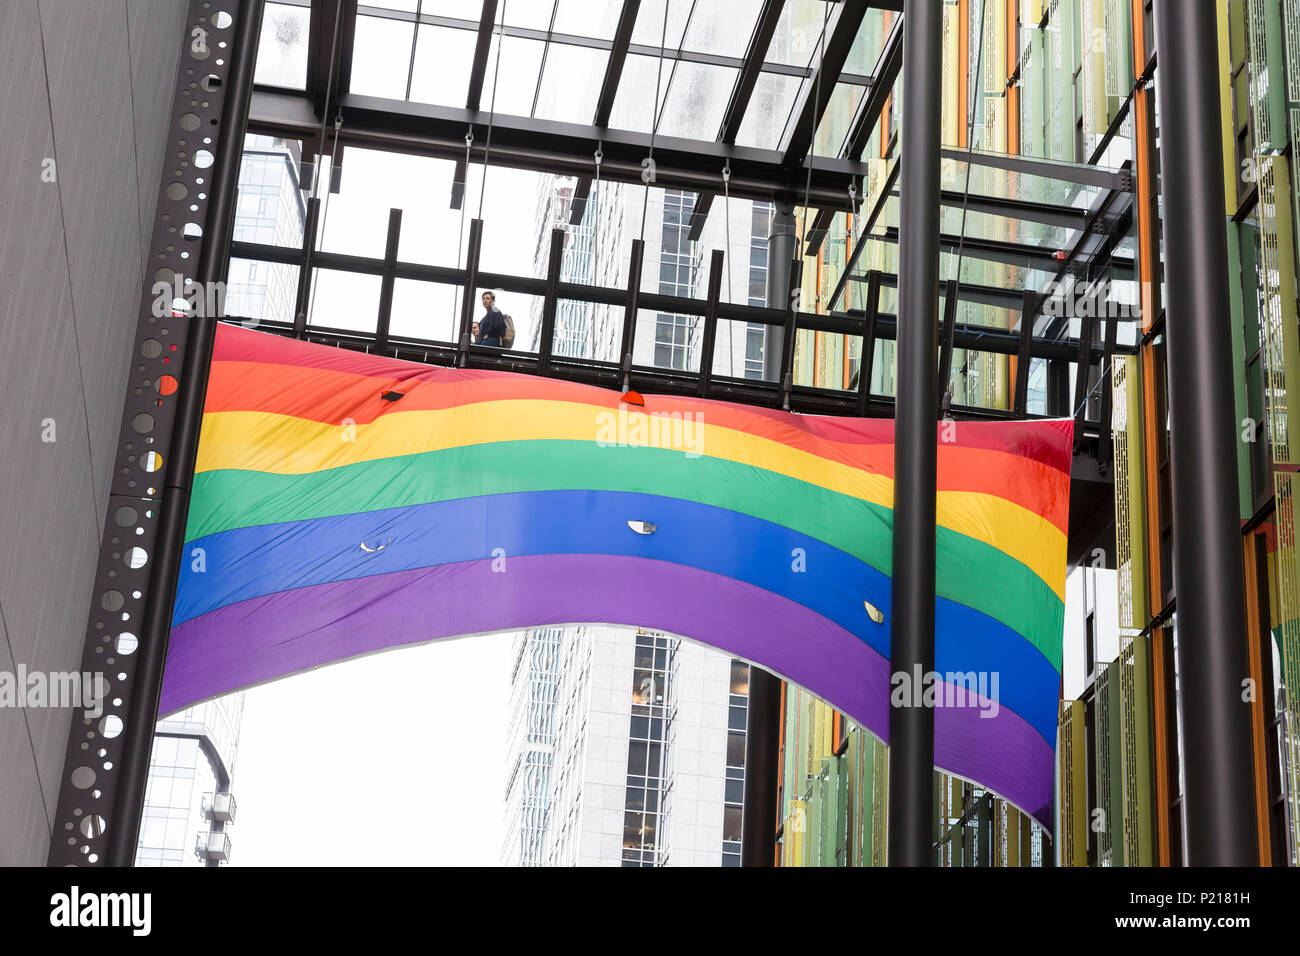 Seattle, Washington: Amazon Celebrates LGBTQ Pride Month with the raising of the pride flag at the Doppler building at Amazon Headquarters. - Stock Image